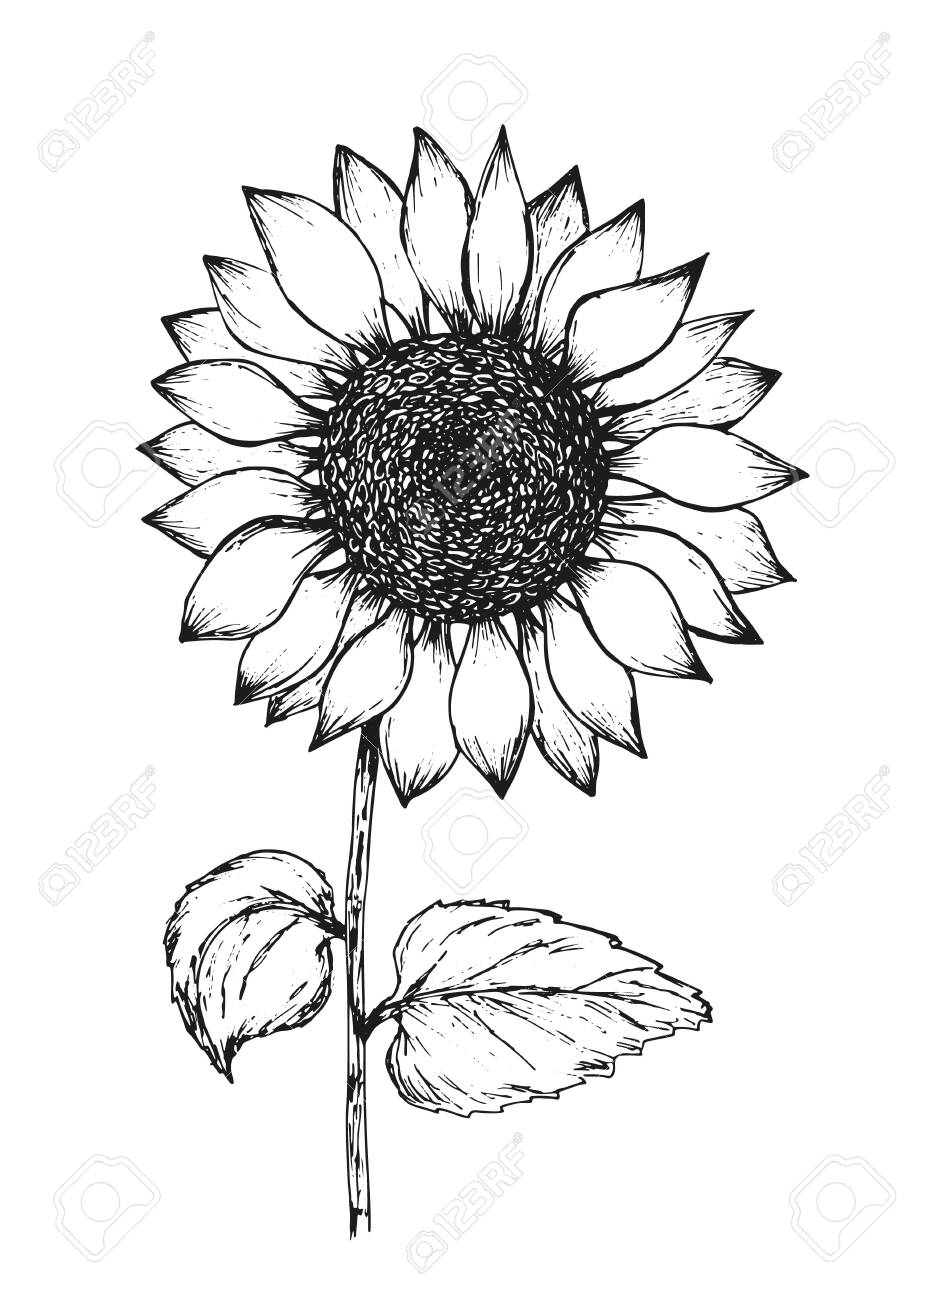 Retro black outline ink pen sketch of sunflower. Hand drawn illustration..